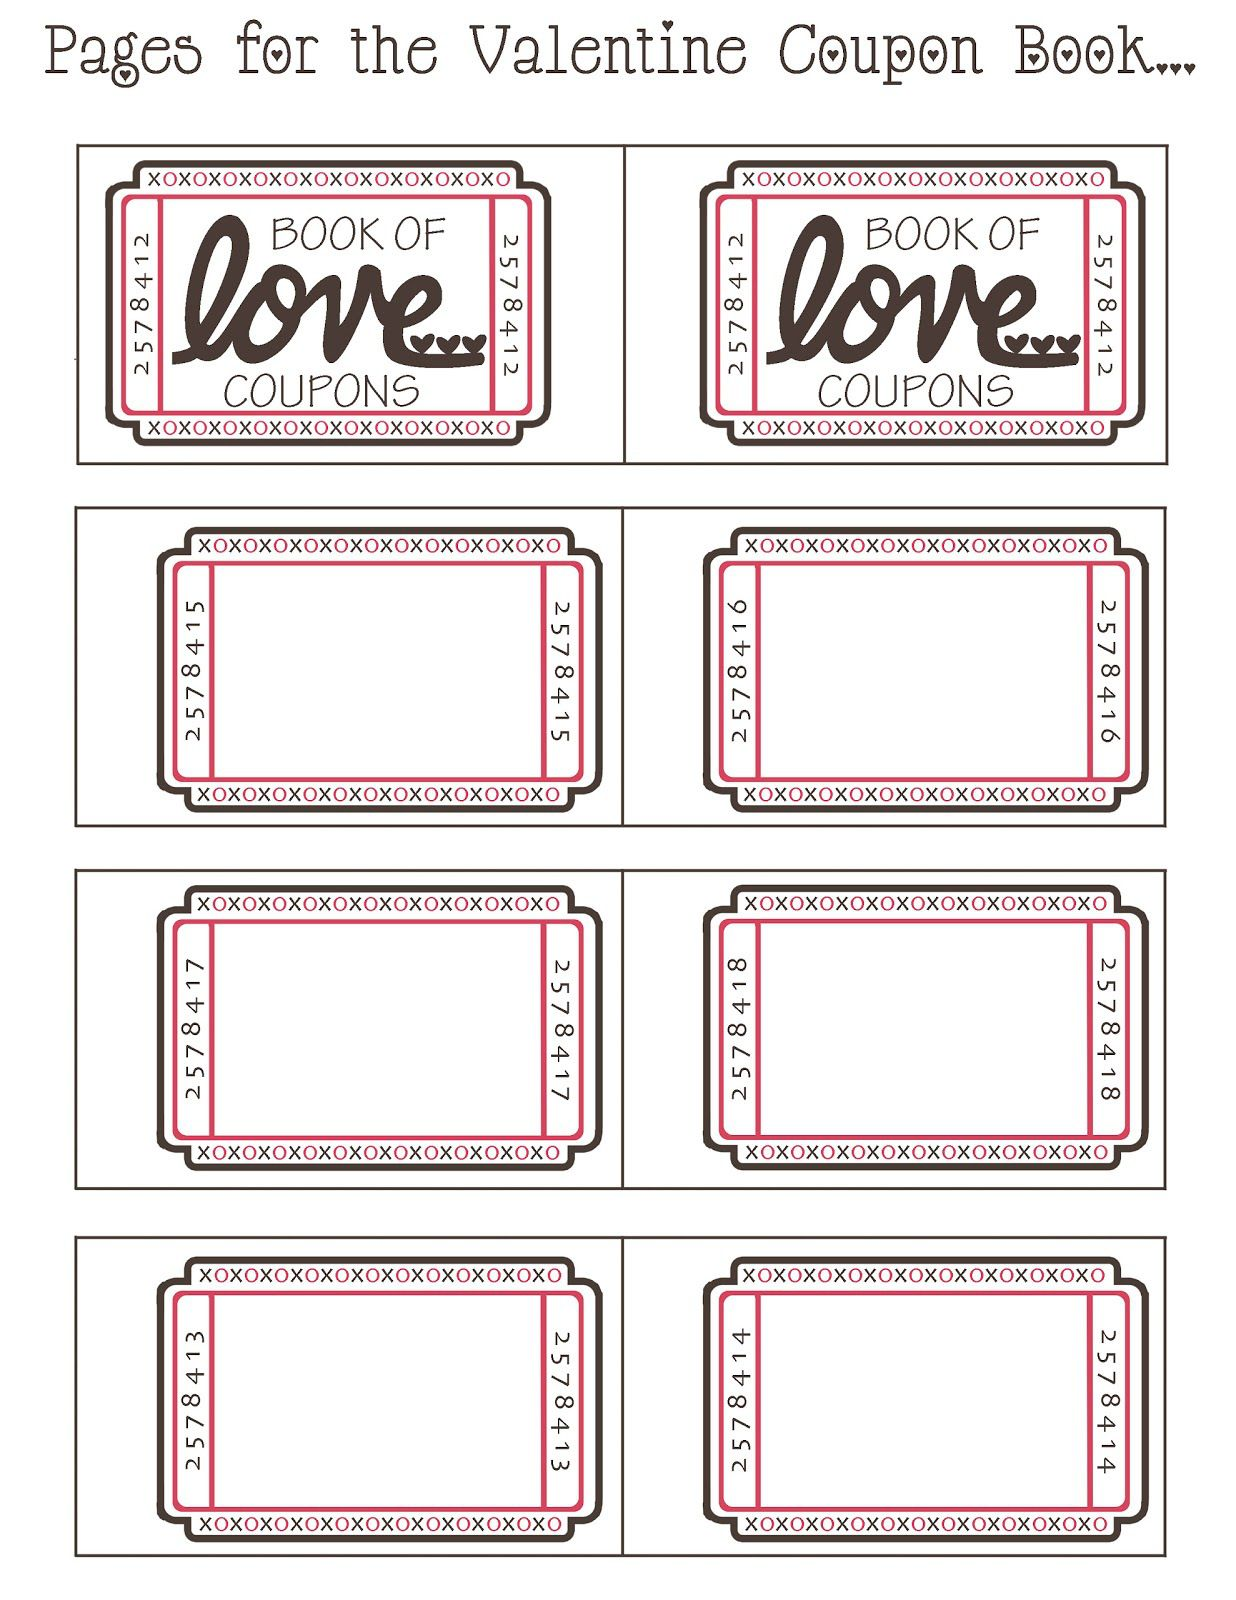 coupon book ideas for husband blank love coupon templates coupon book ideas for husband blank love coupon templates printable